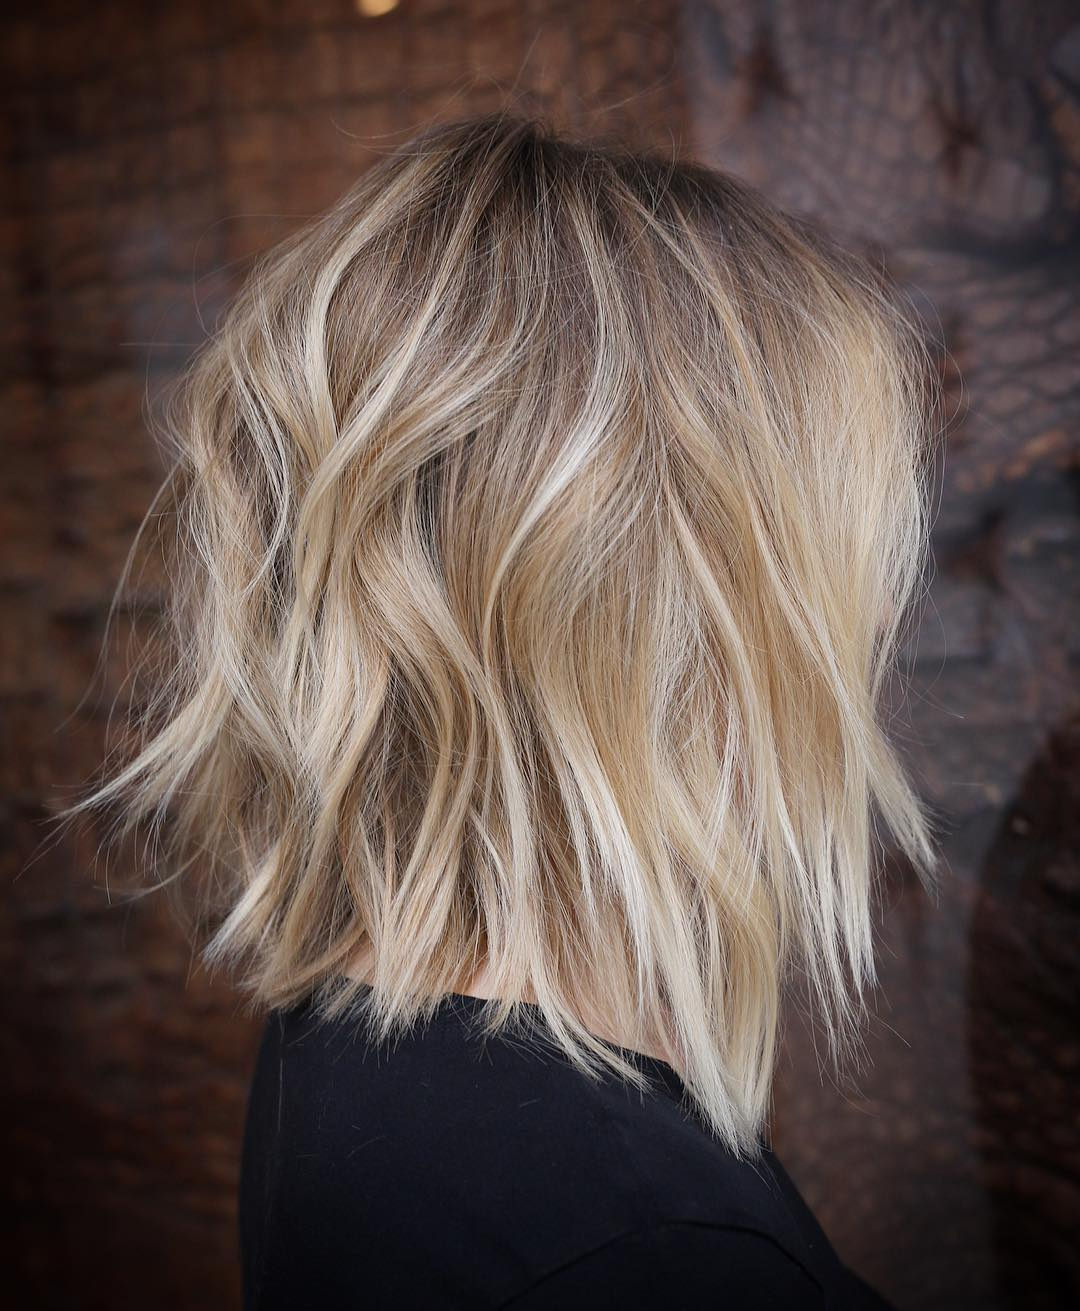 Stylish Lob Hairstyle, Best Shoulder Length Hair for Women 2019